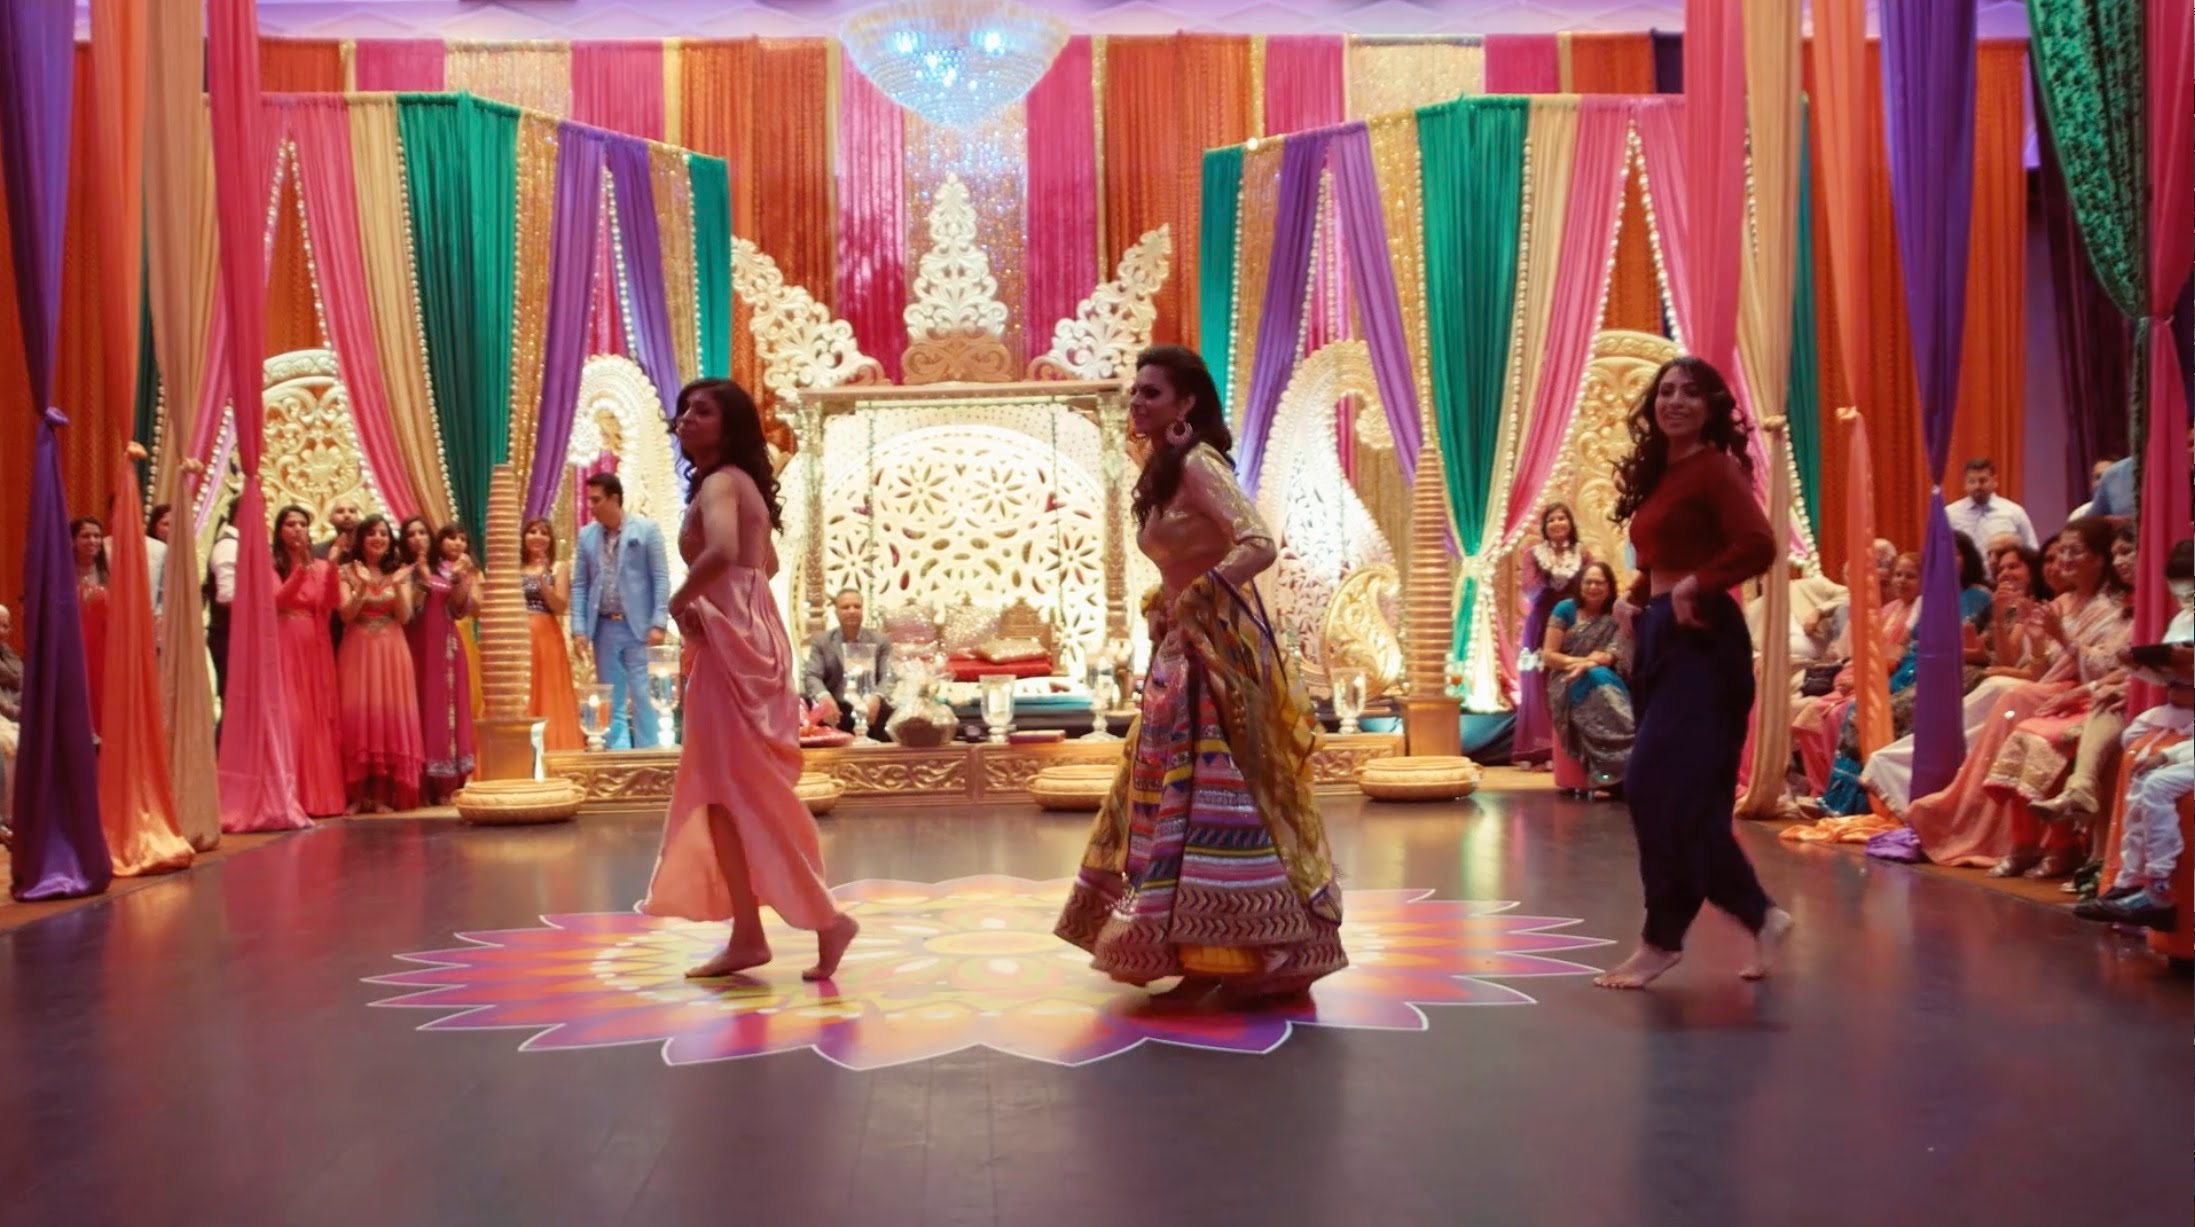 Top 10 Tips For Planning A Successful Sangeet